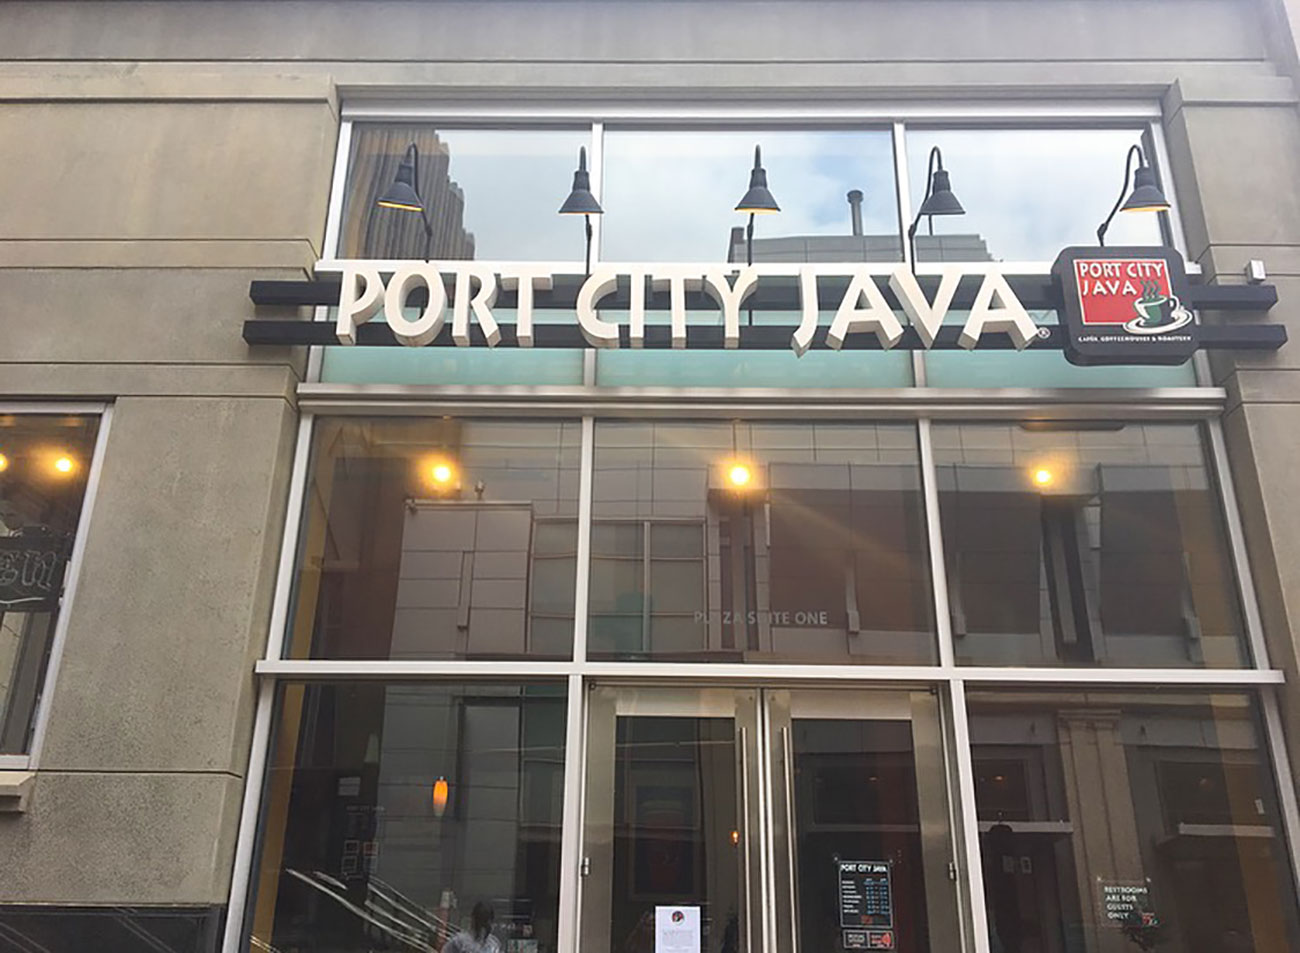 Piccadilly by Rush Espresso to replace Port City Java in Uptown